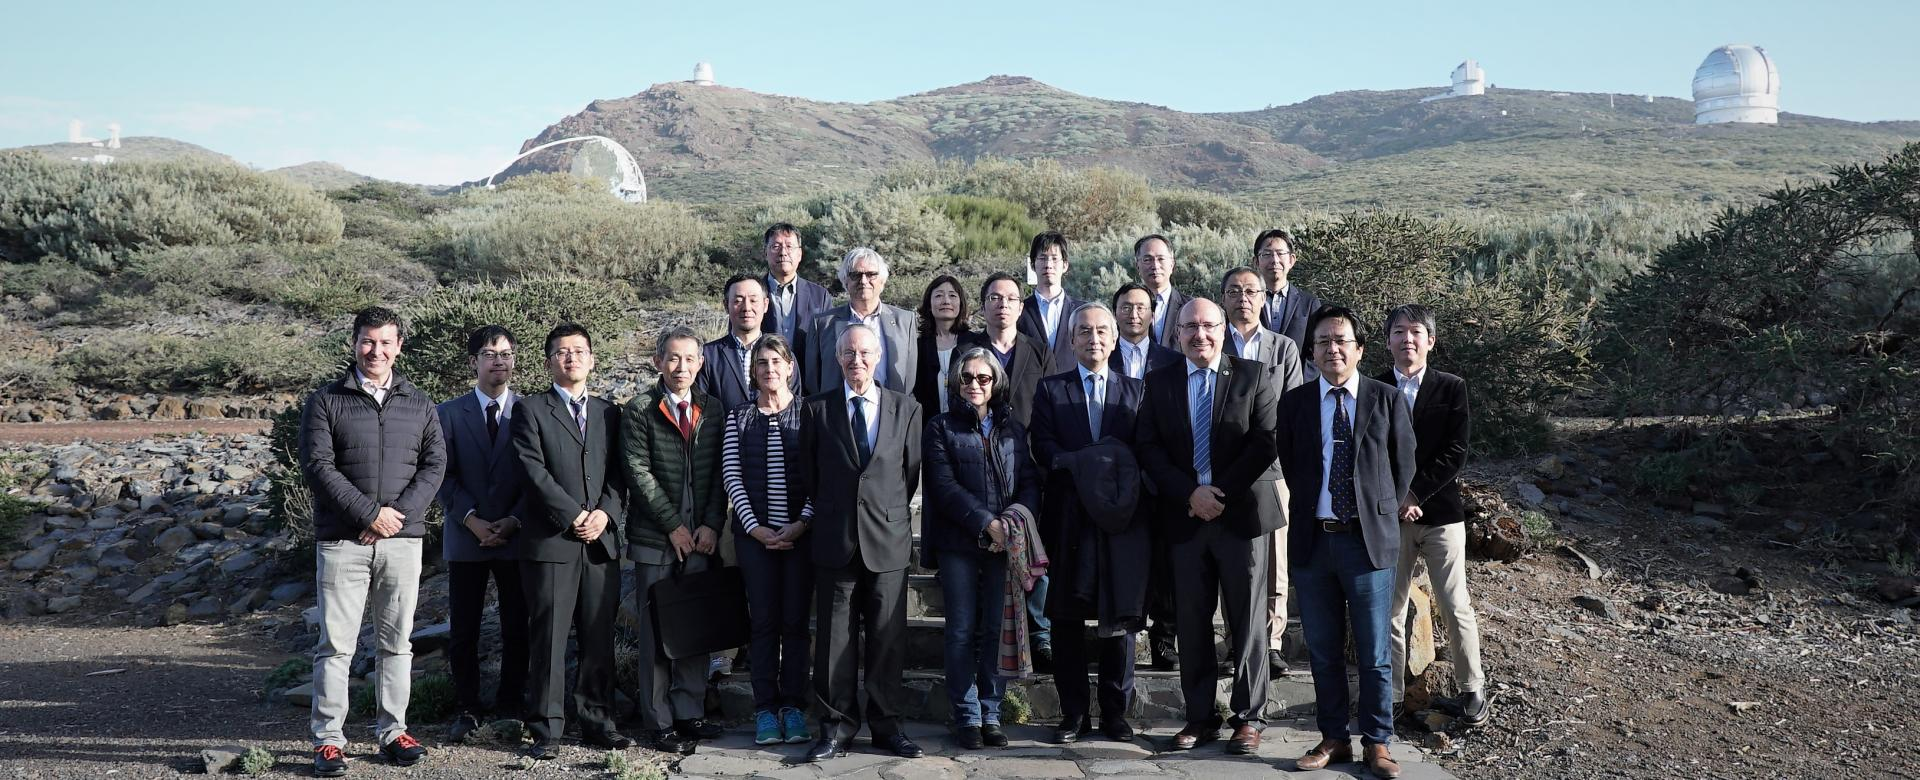 Japanese delegation at the Roque de los Muchachos Observatory (La Palma)